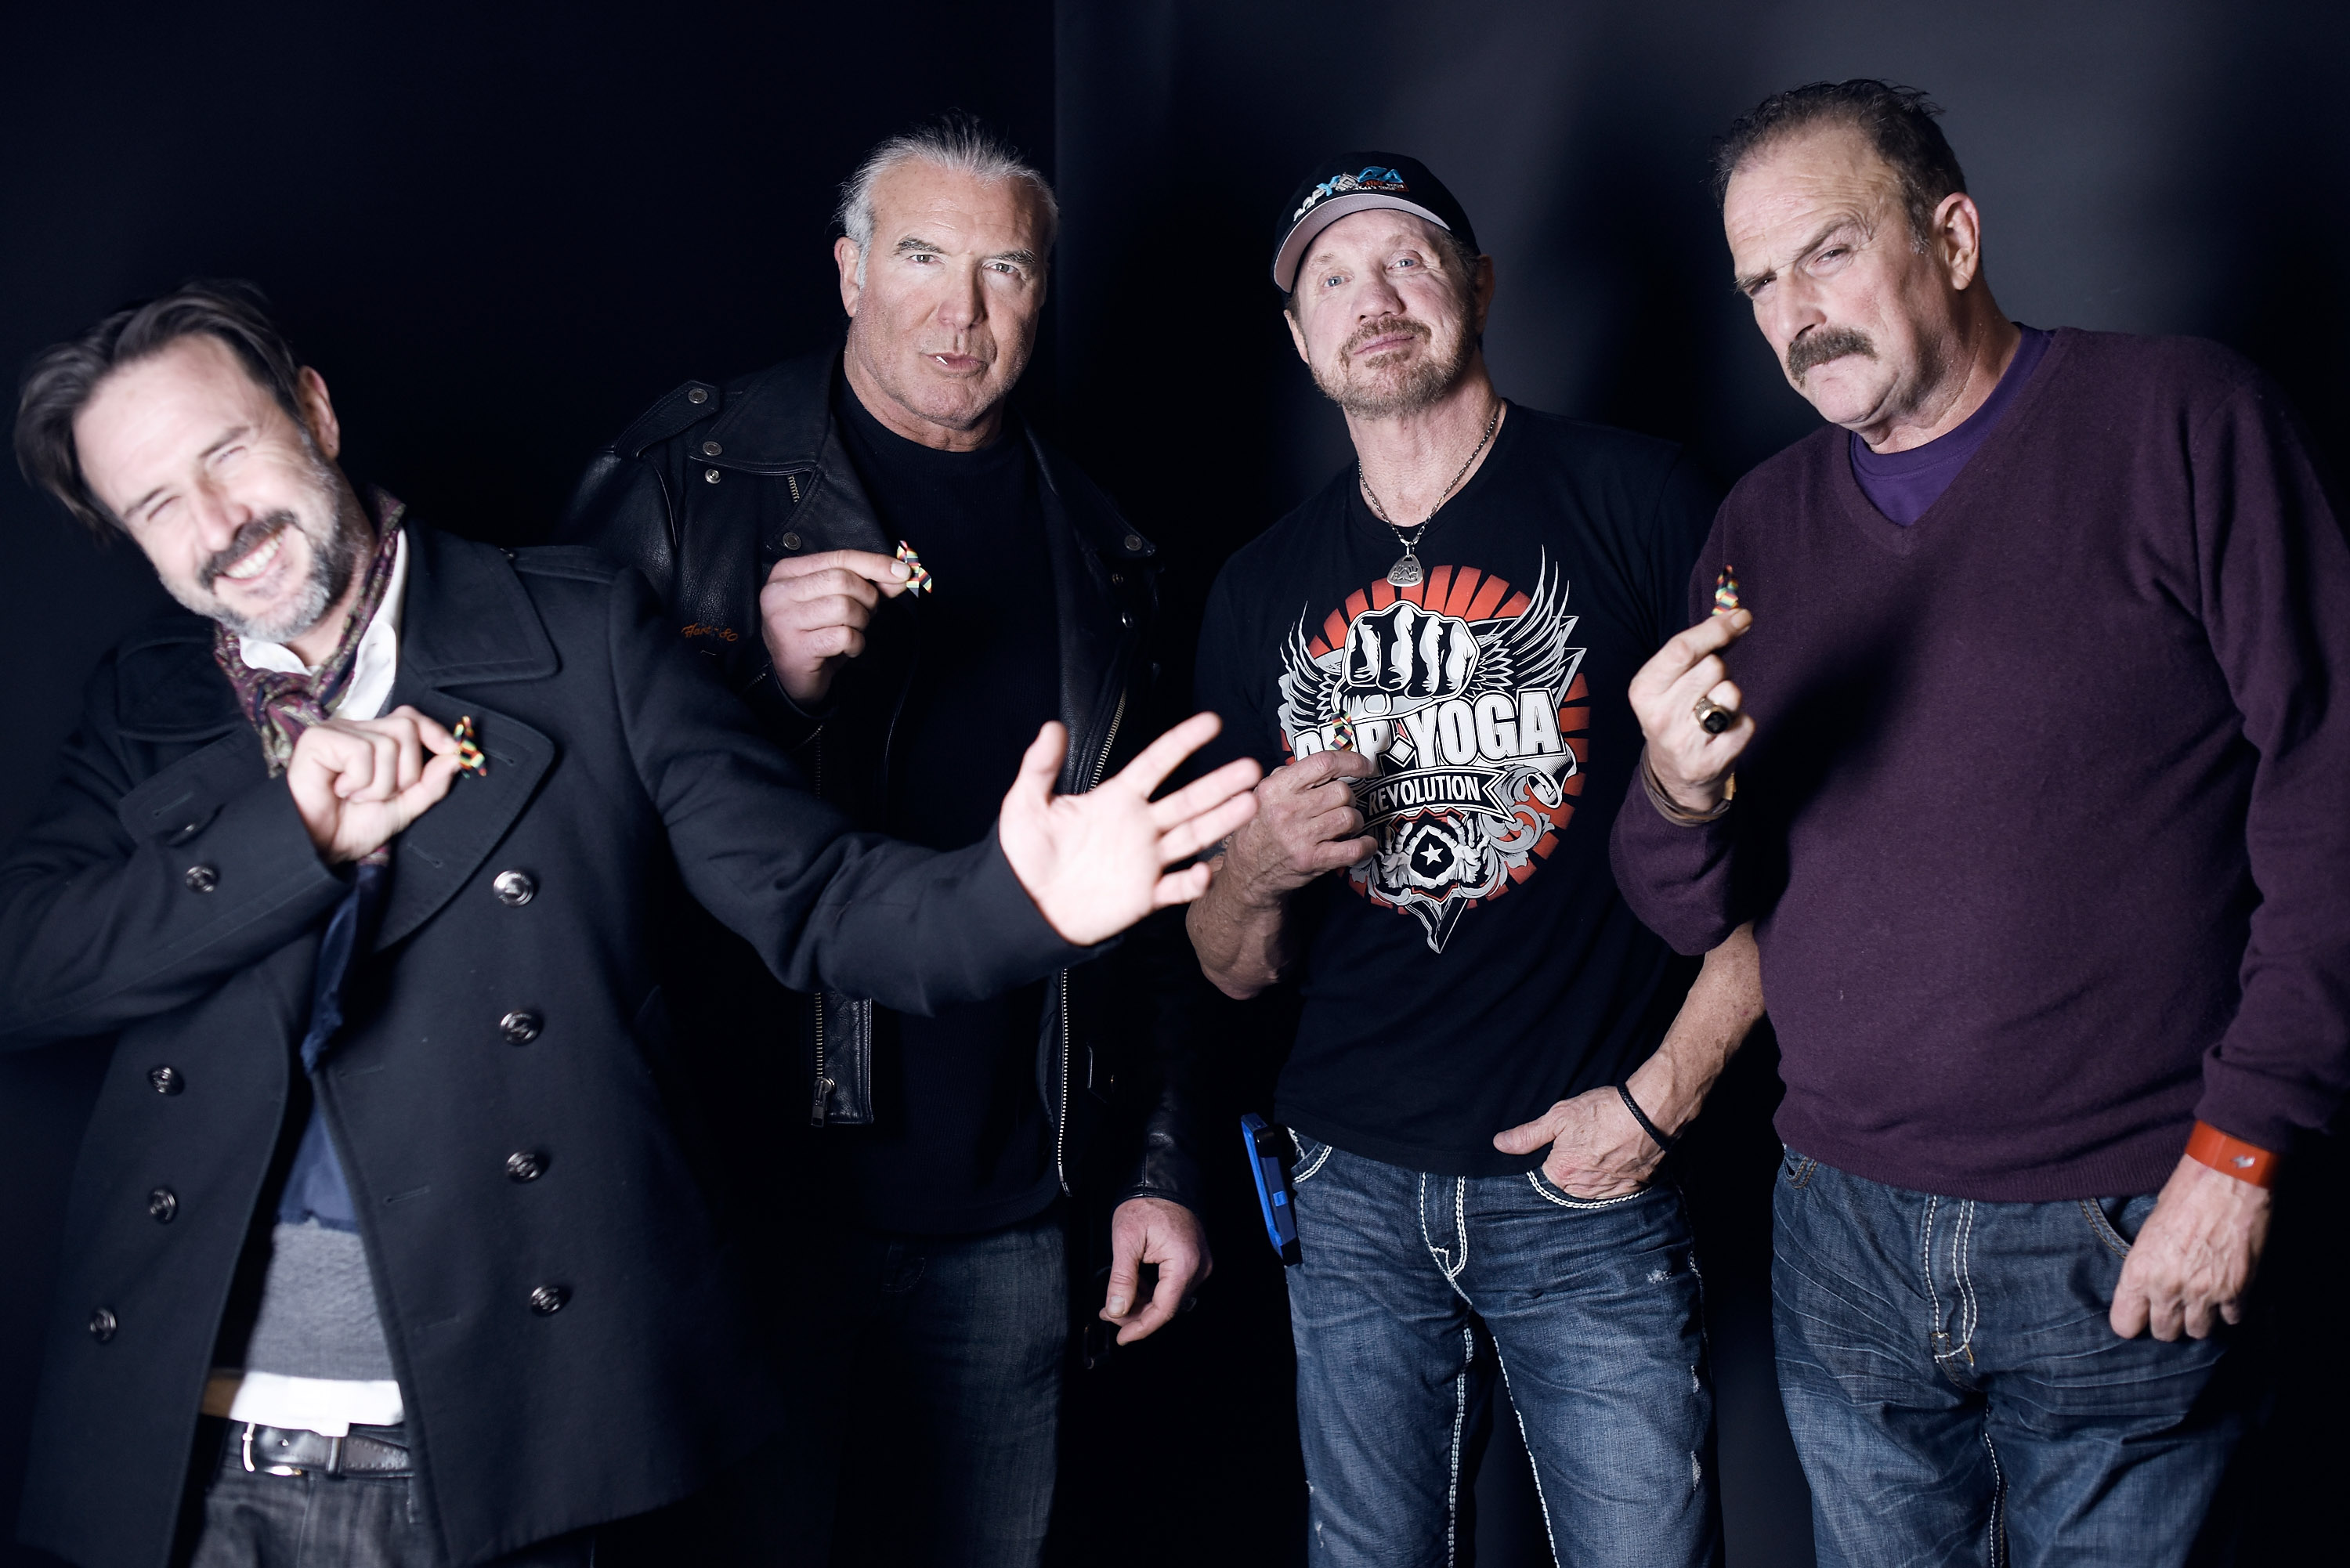 Jake Roberts, Scott Hall & DDP